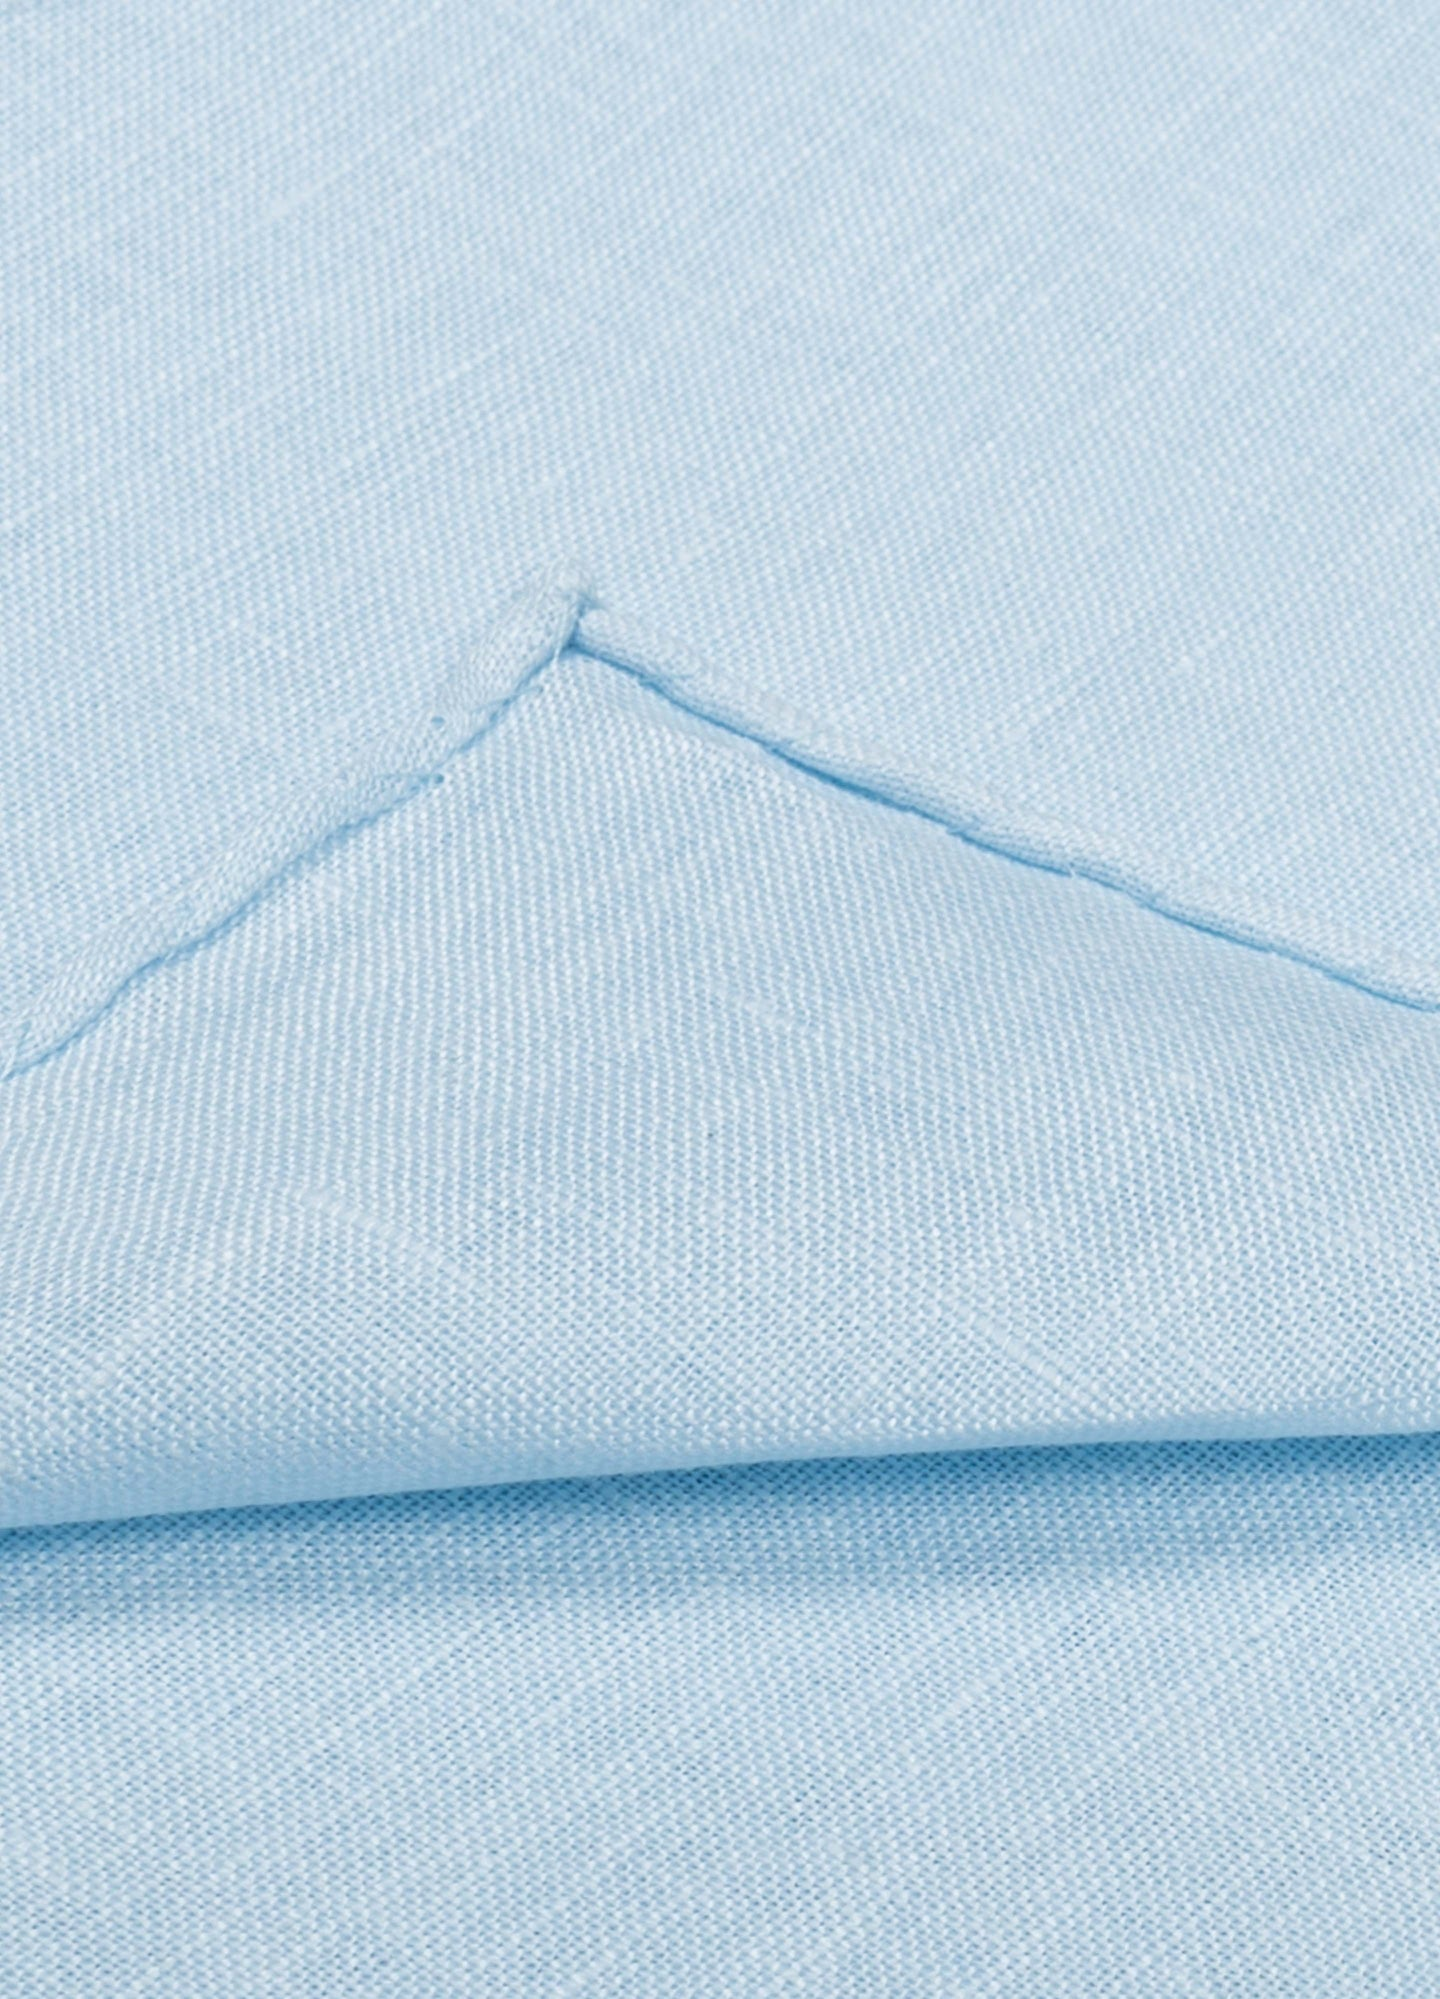 Handrolled Plain Linen